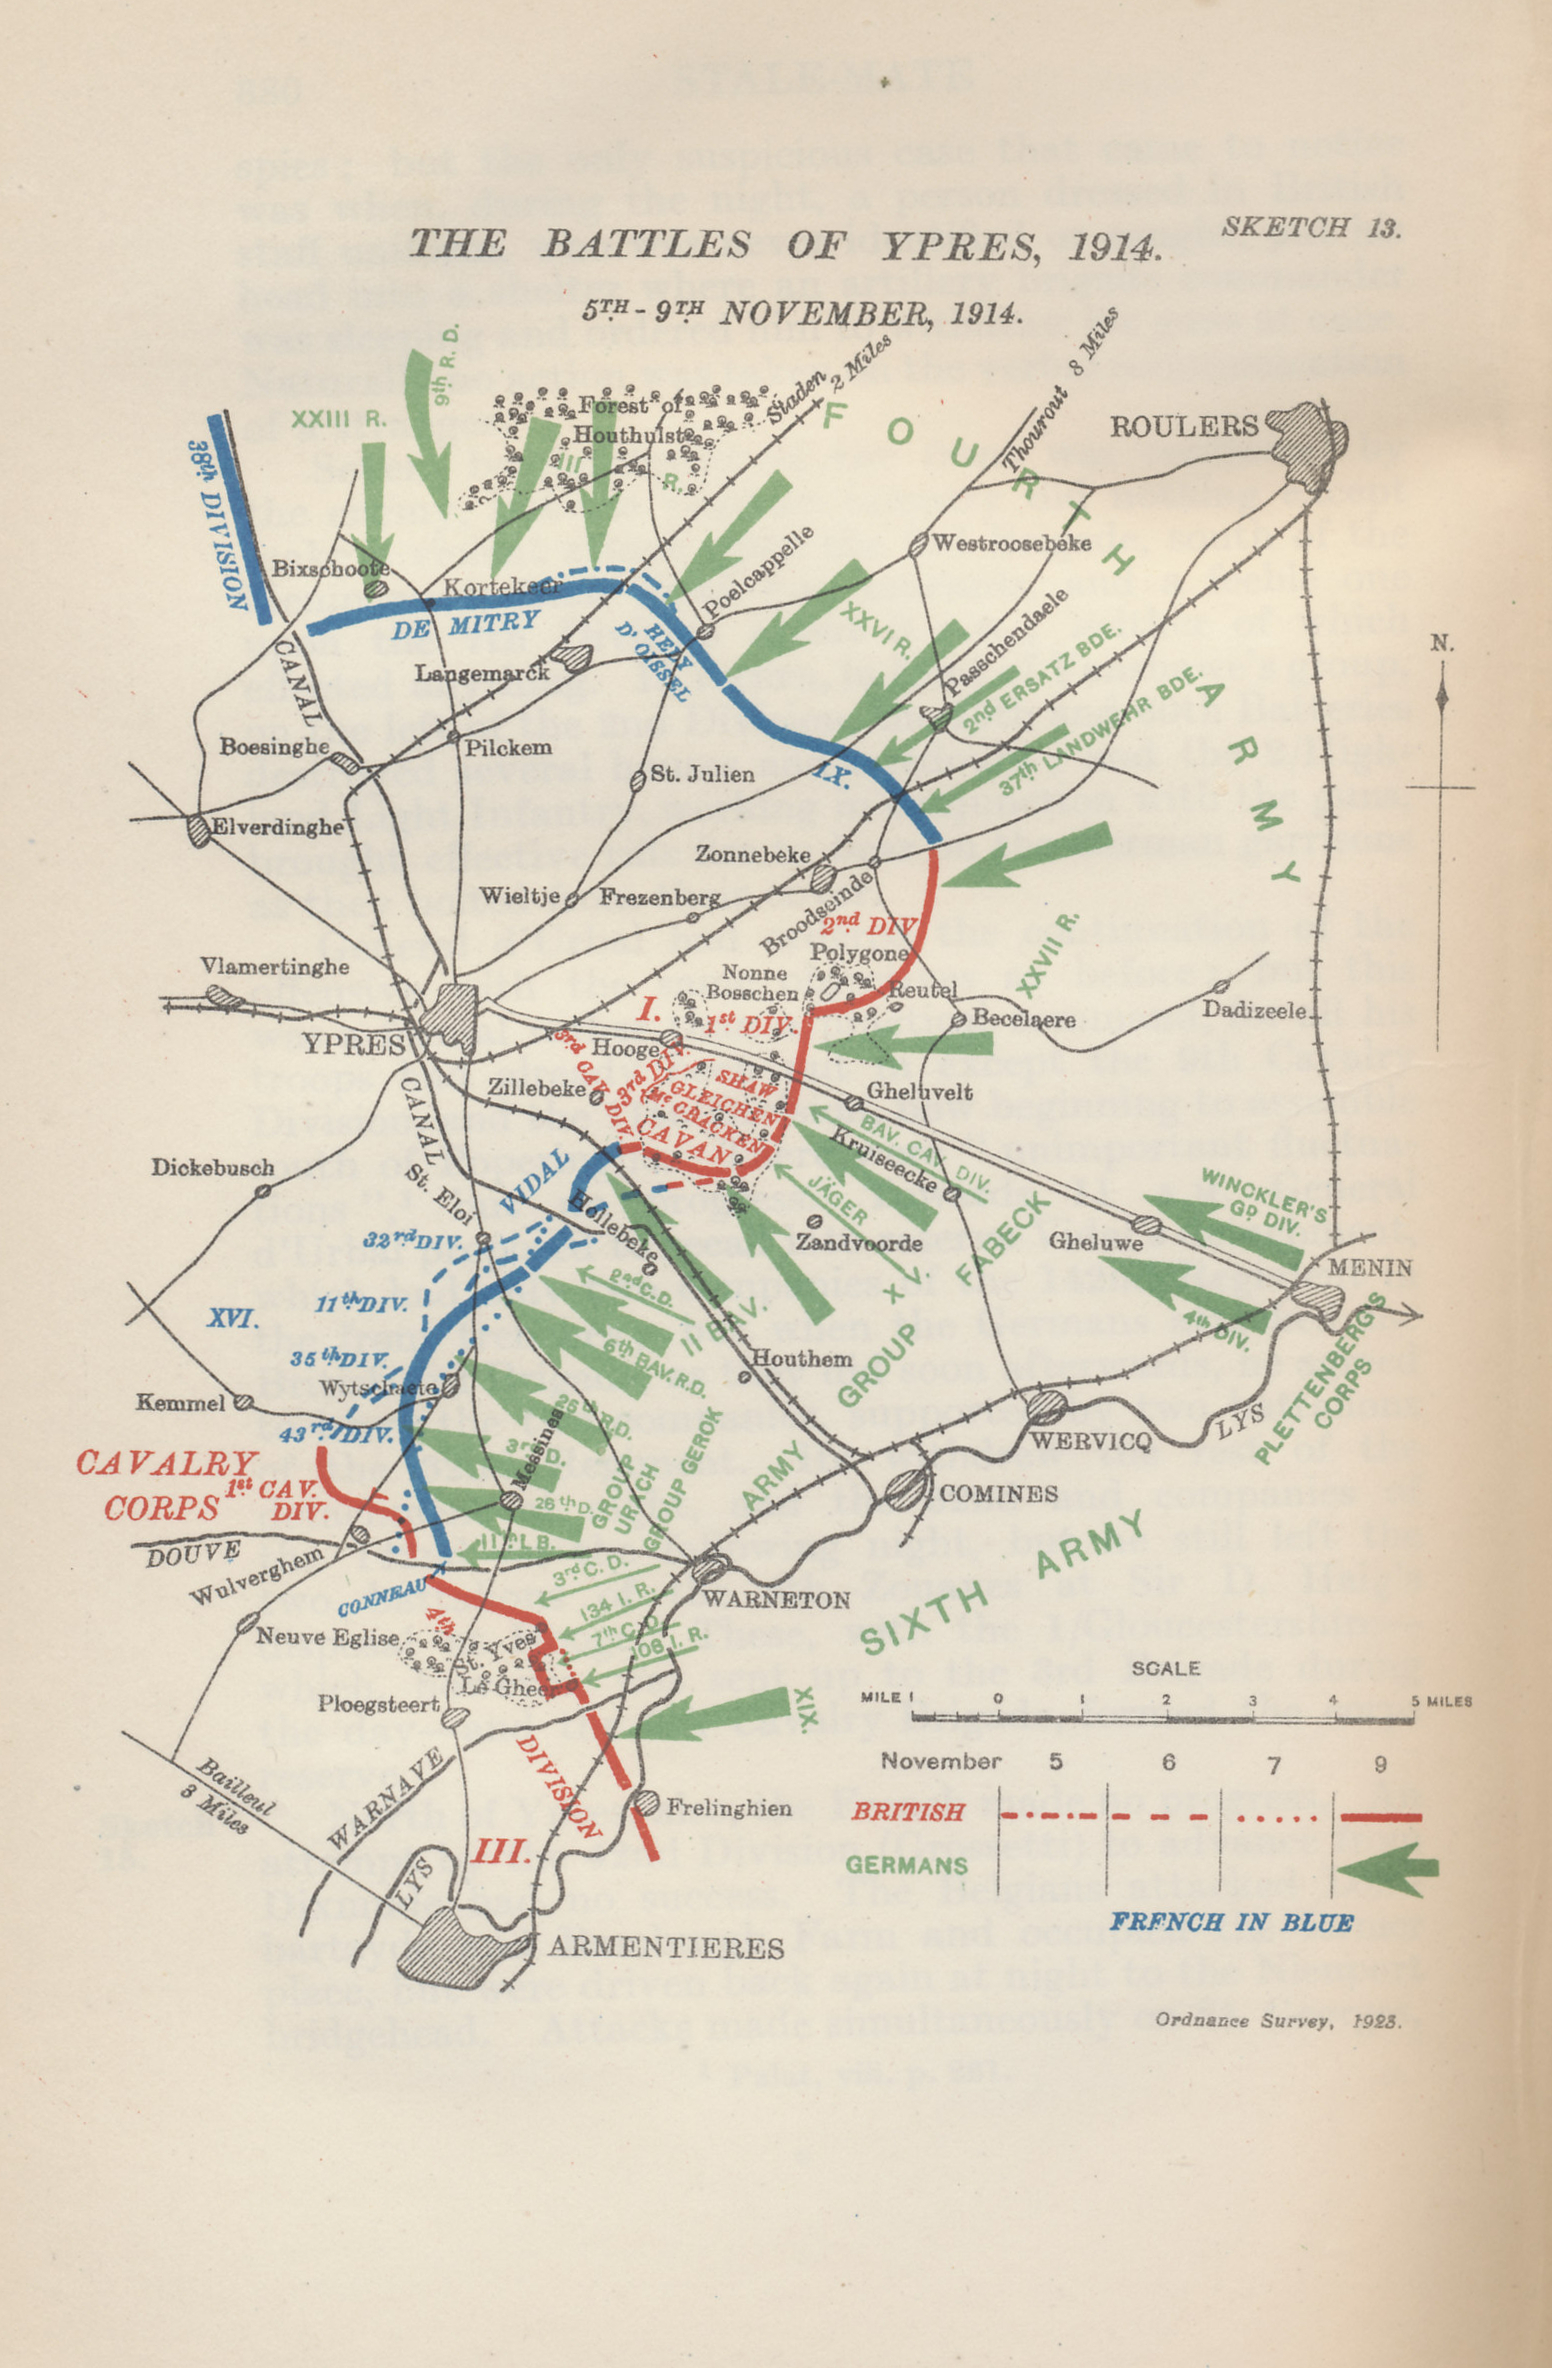 Map of the positions in the Battle of Ypres, November 5 through 9, 1915 from Military Operations France and Belgium, 1914, Vol. II, October and November, by J. E. Edmonds with maps and sketches compiled by Major A. F. Becke. The British had been subjected to repeated German attacks since mid-October.